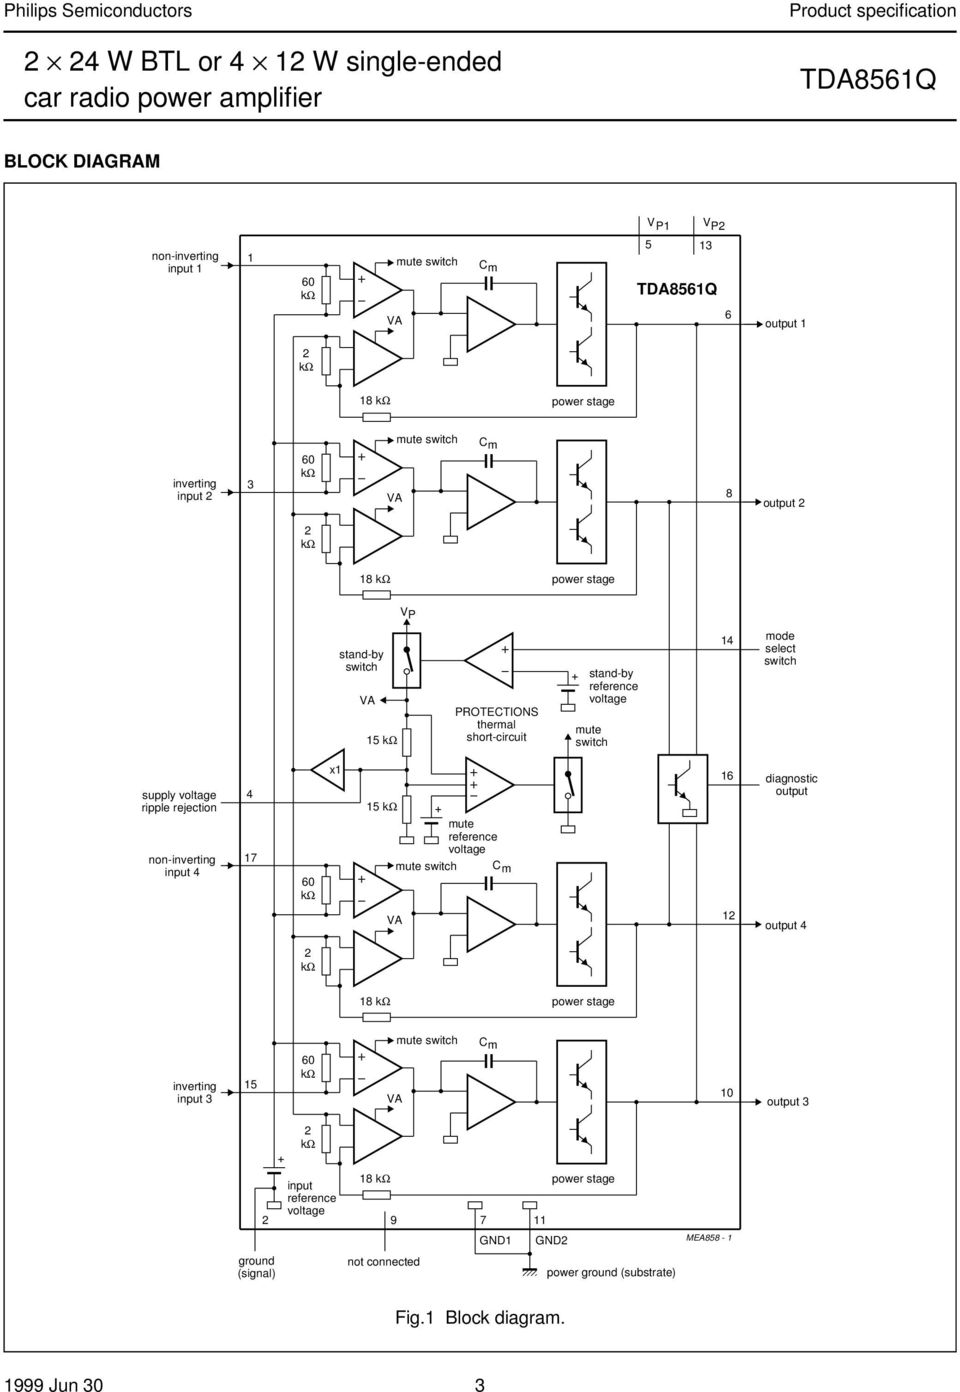 Data Sheet Tda8561q 2 24 W Btl Or 4 12 Single Ended Car Radio Tda1562q Audio Power Amplifier Mono Non Inverting Input 7 X 5 Mute Reference Voltage Switch C M